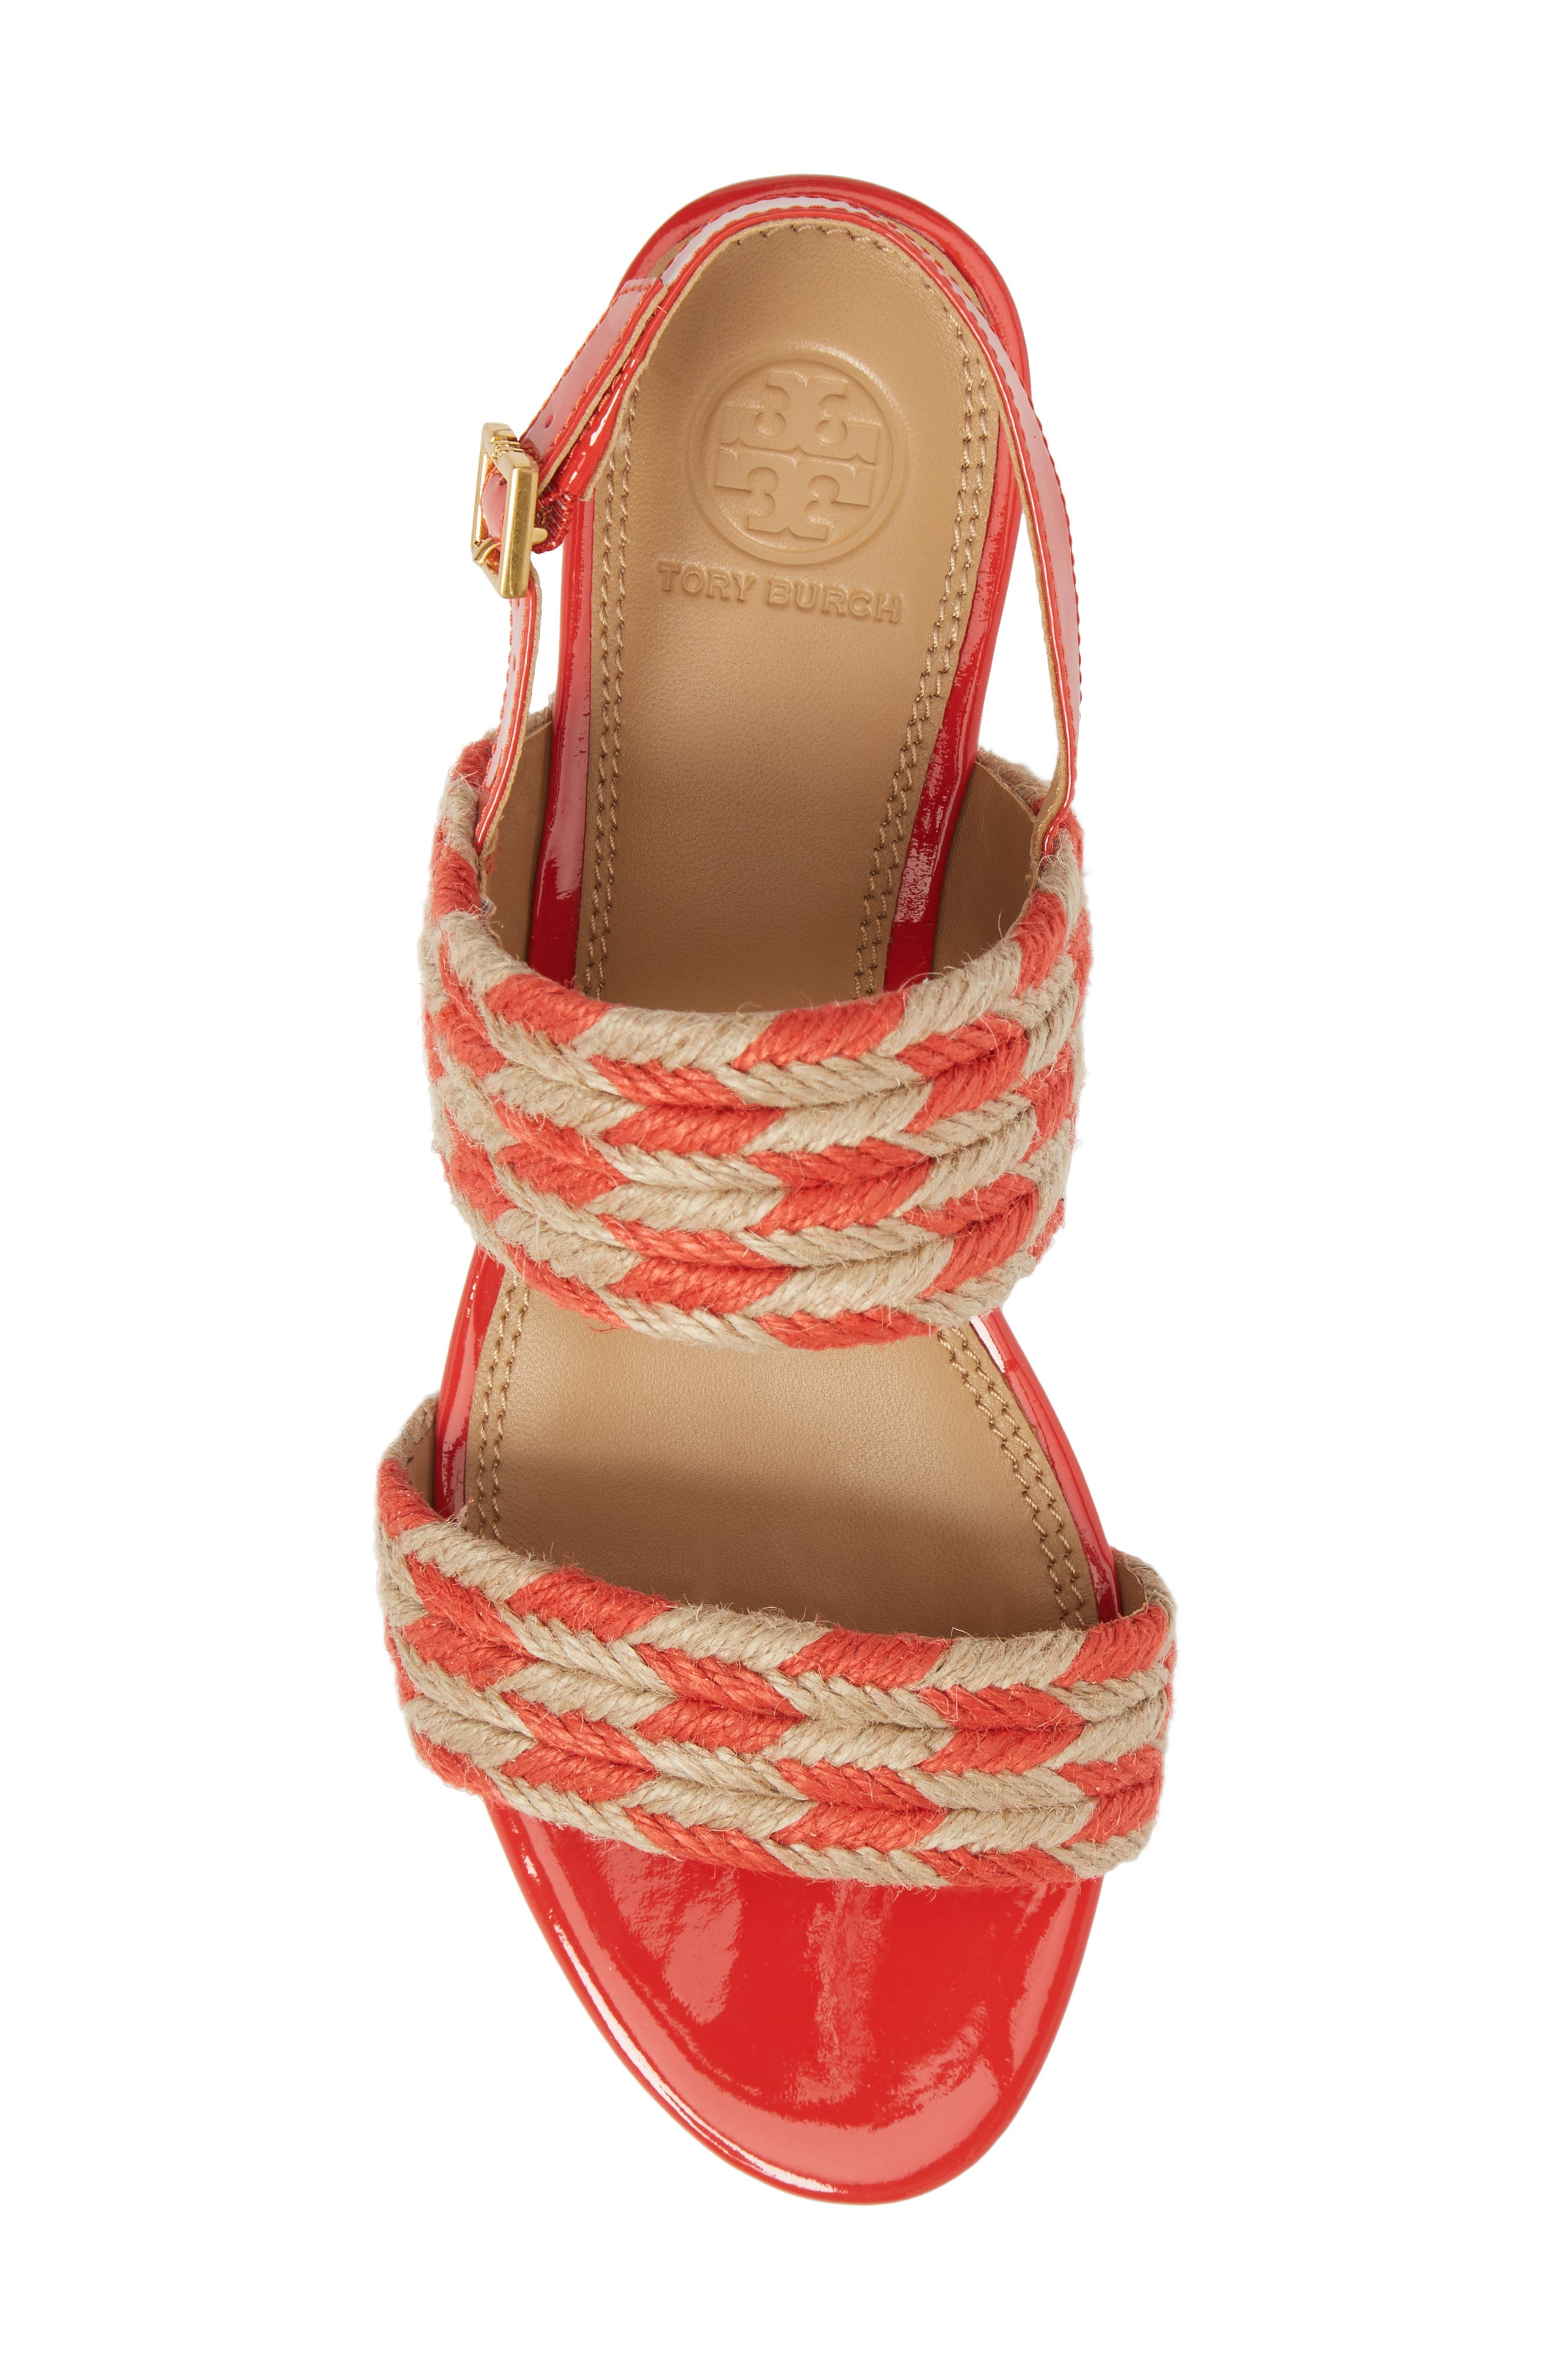 Lola Slingback Sandal,                             Alternate thumbnail 5, color,                             Poppy Orange/ Perfect Ivory